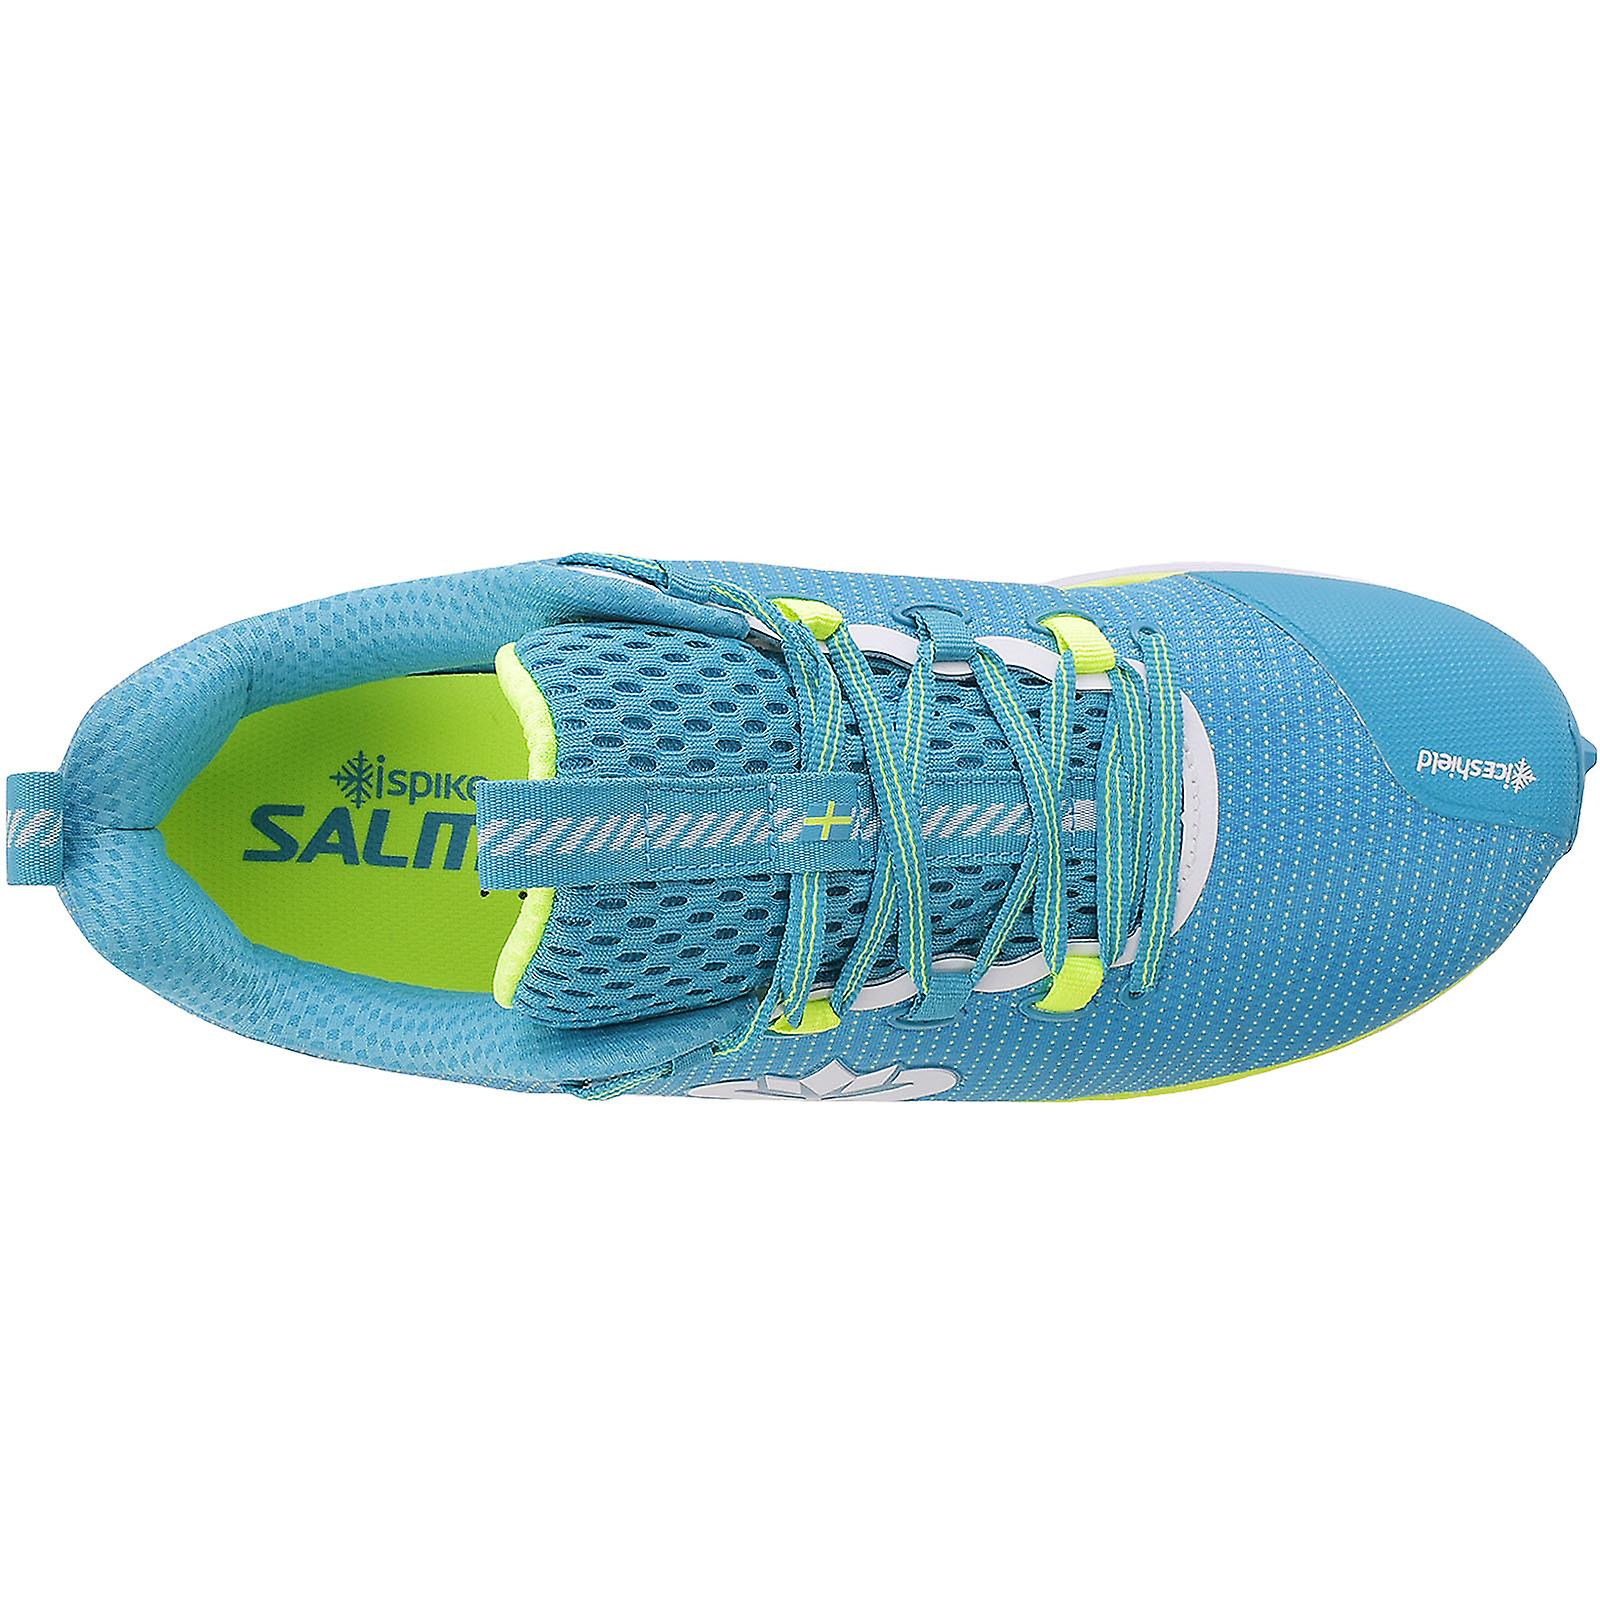 Chaussures Salming Mens Ispike Winter Running Trail Outdoor Sports Trainers - Bleu